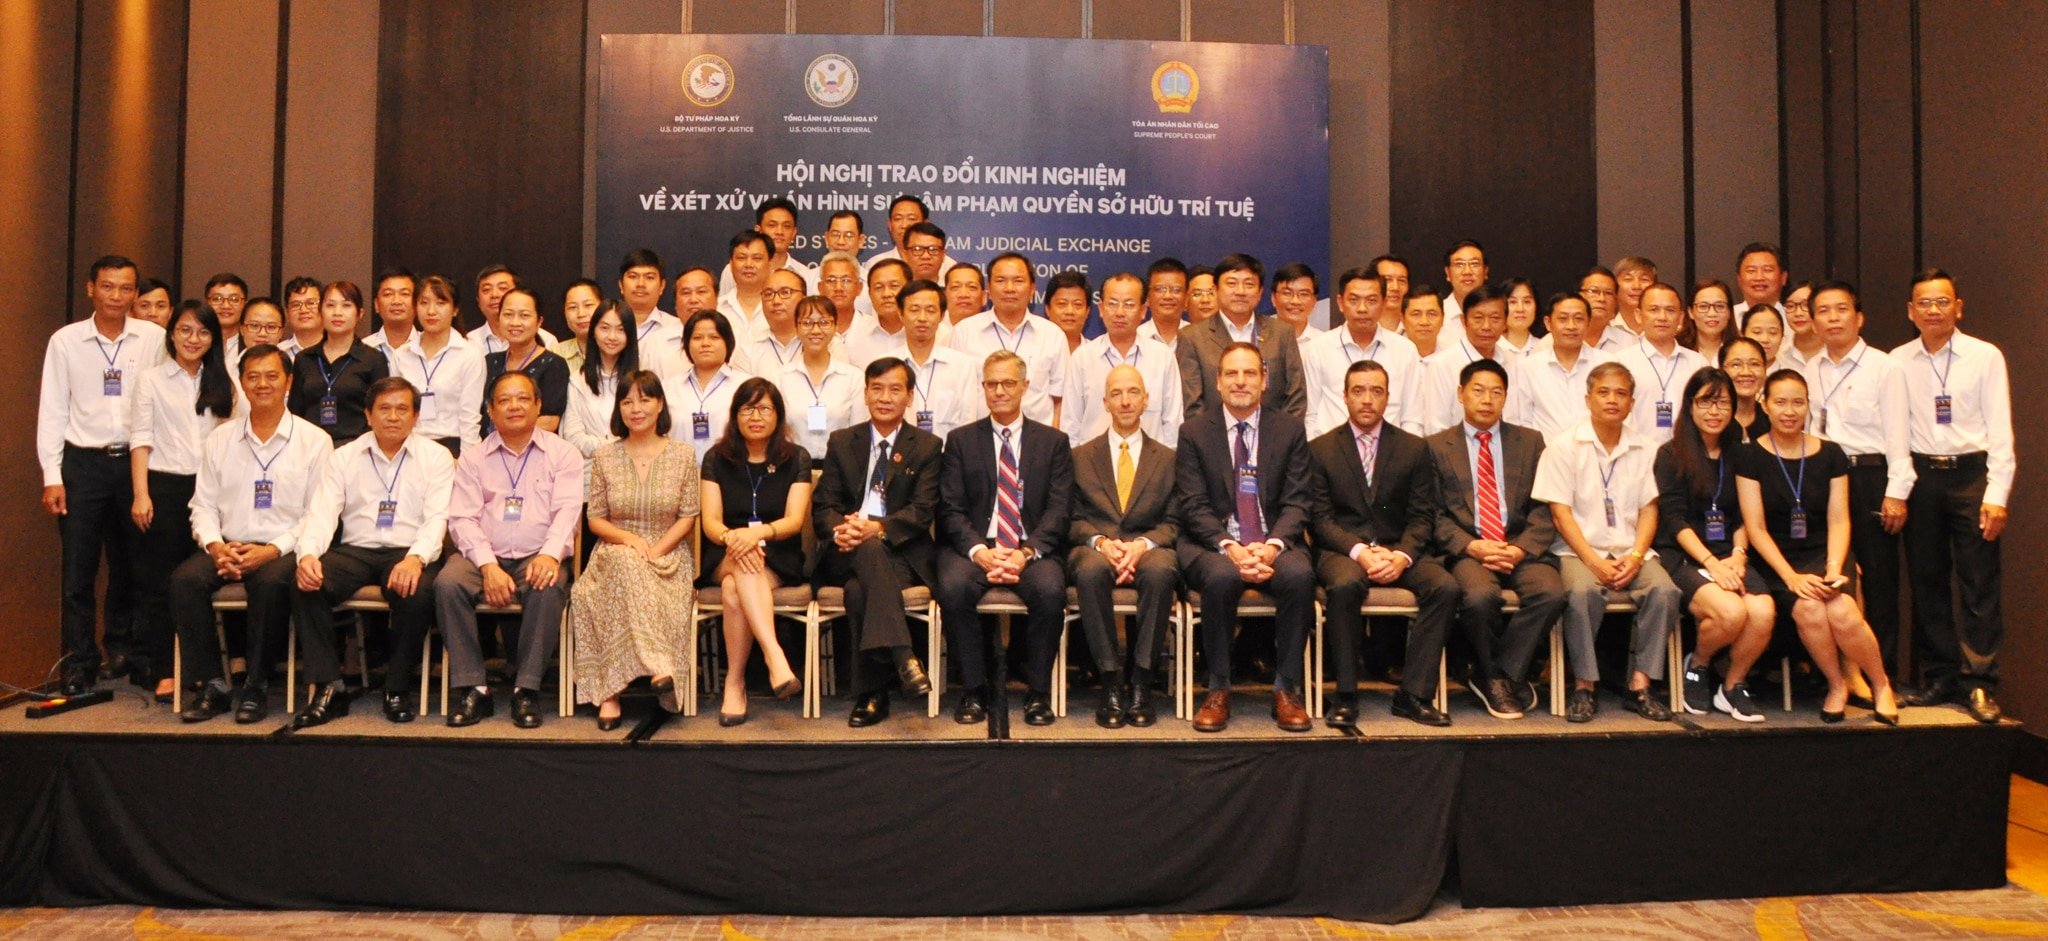 Women and men seated and standing for group portrait of workshop attendees (U.S. Consulate Ho Chi Minh City)